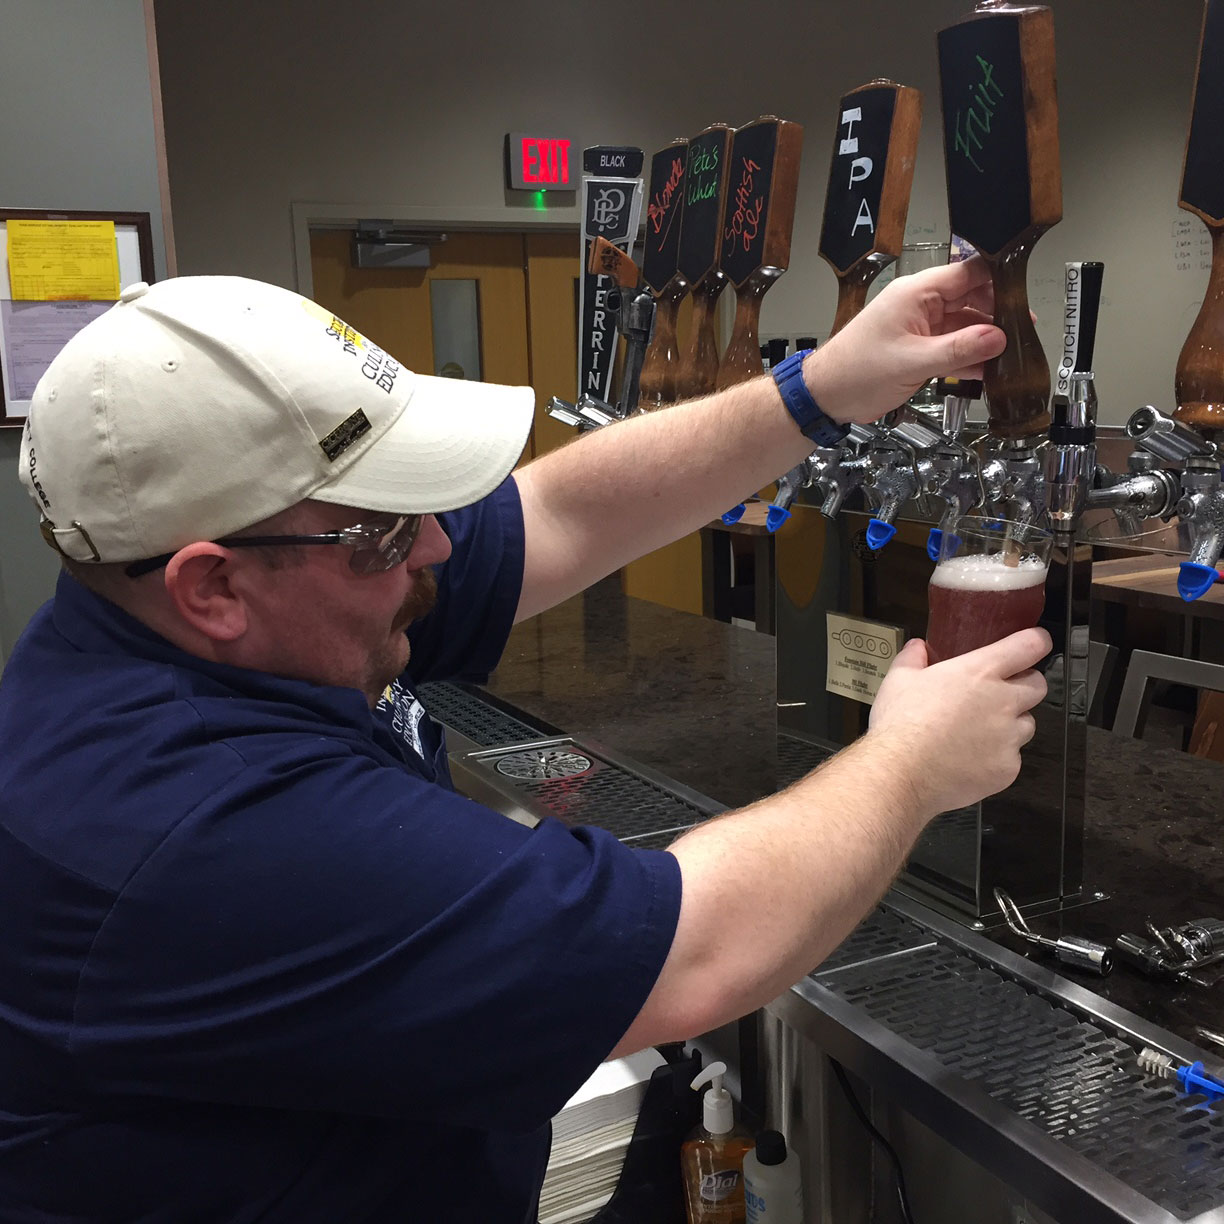 craft-brewing-school-fwx-2